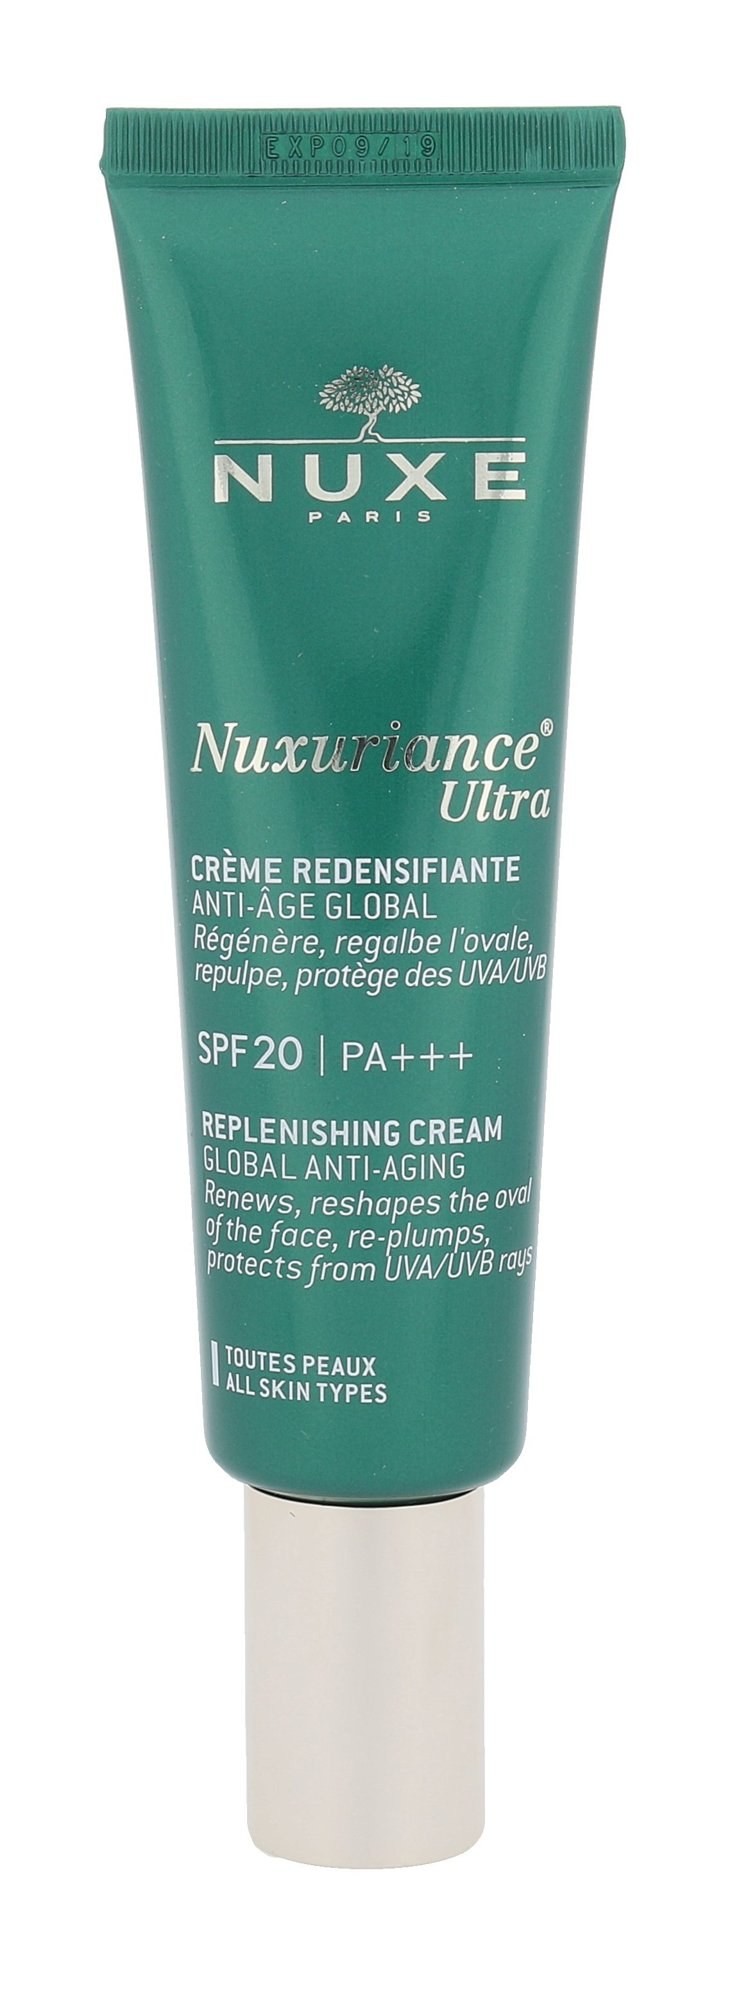 NUXE Nuxuriance Ultra Cosmetic 50ml